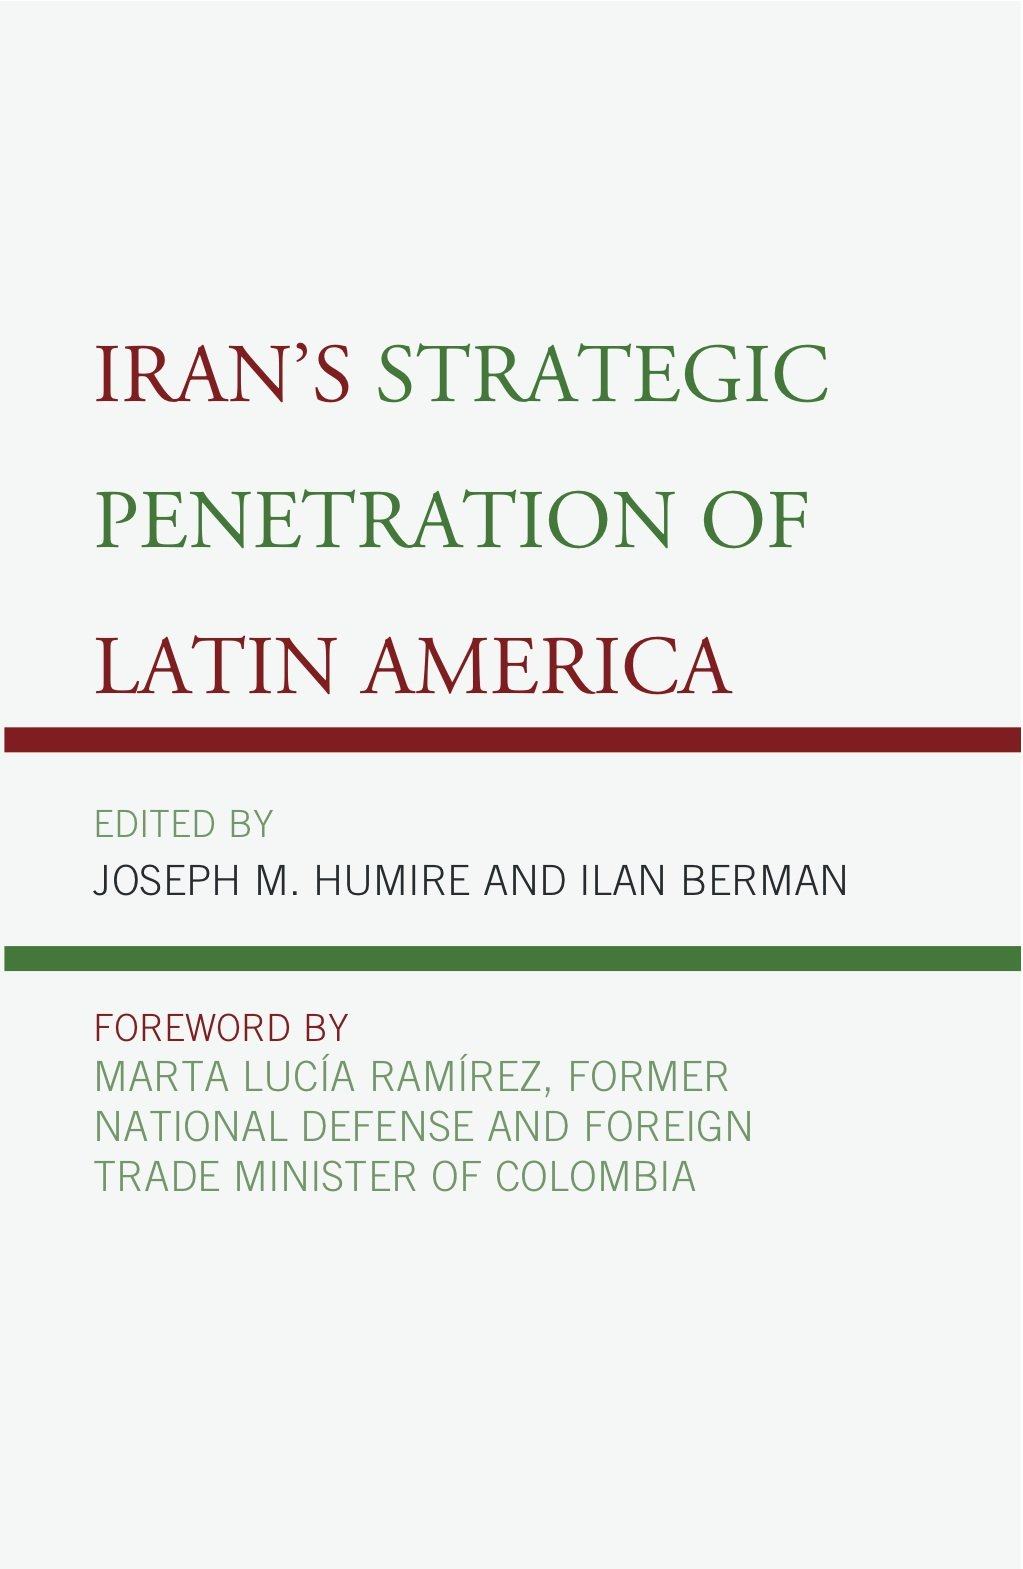 Iran's Strategic Penetration of Latin America